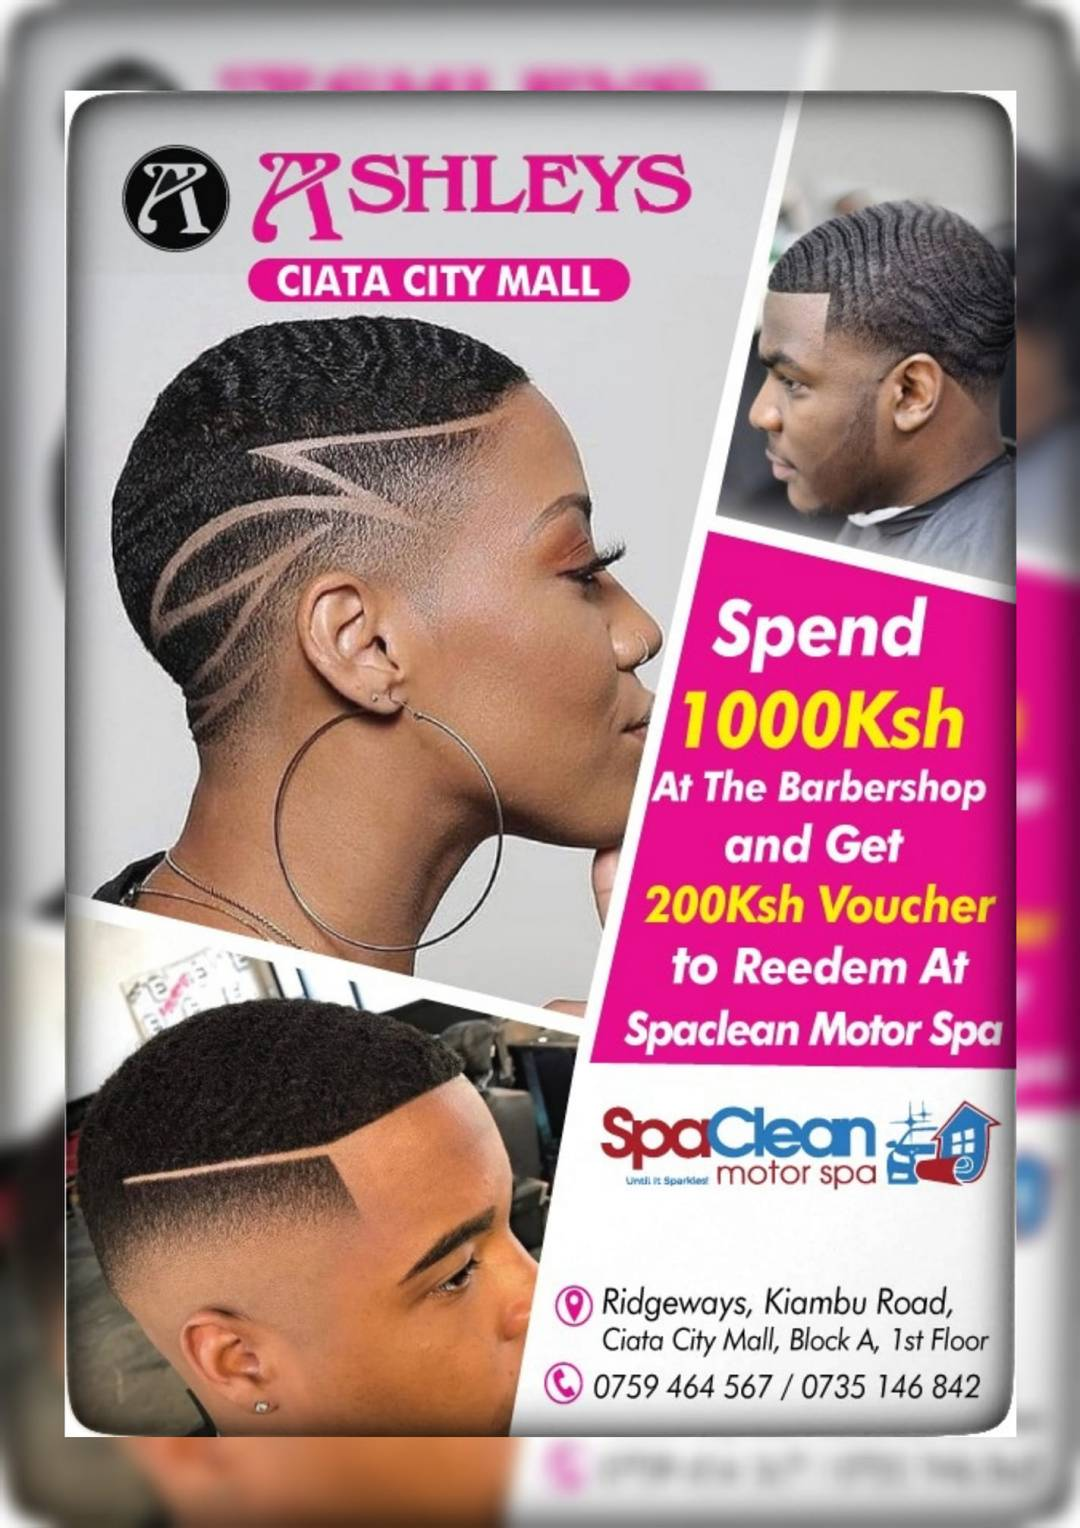 Ashleys Kenya Ciata Mall Special Offer voucher